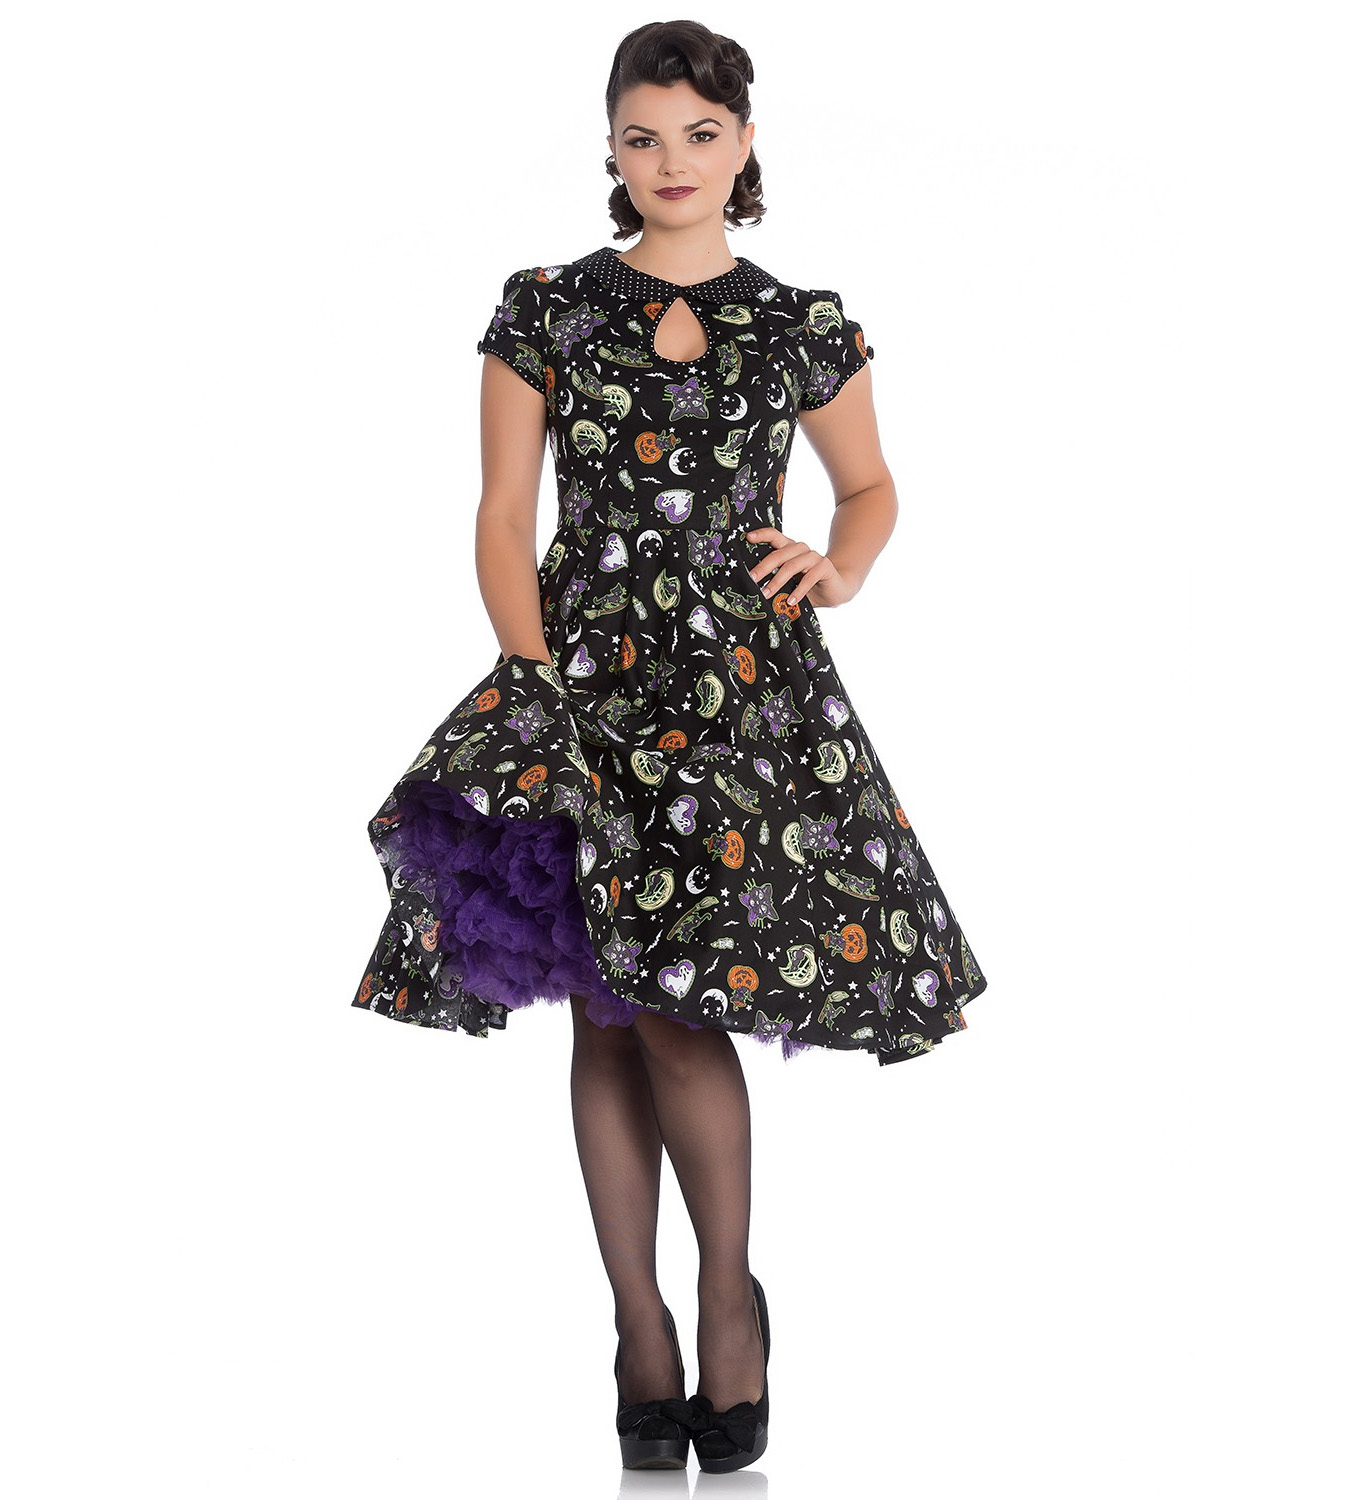 Hell-Bunny-50s-Black-Pin-Up-Dress-Horror-Witchy-SALEM-Halloween-All-Sizes thumbnail 23